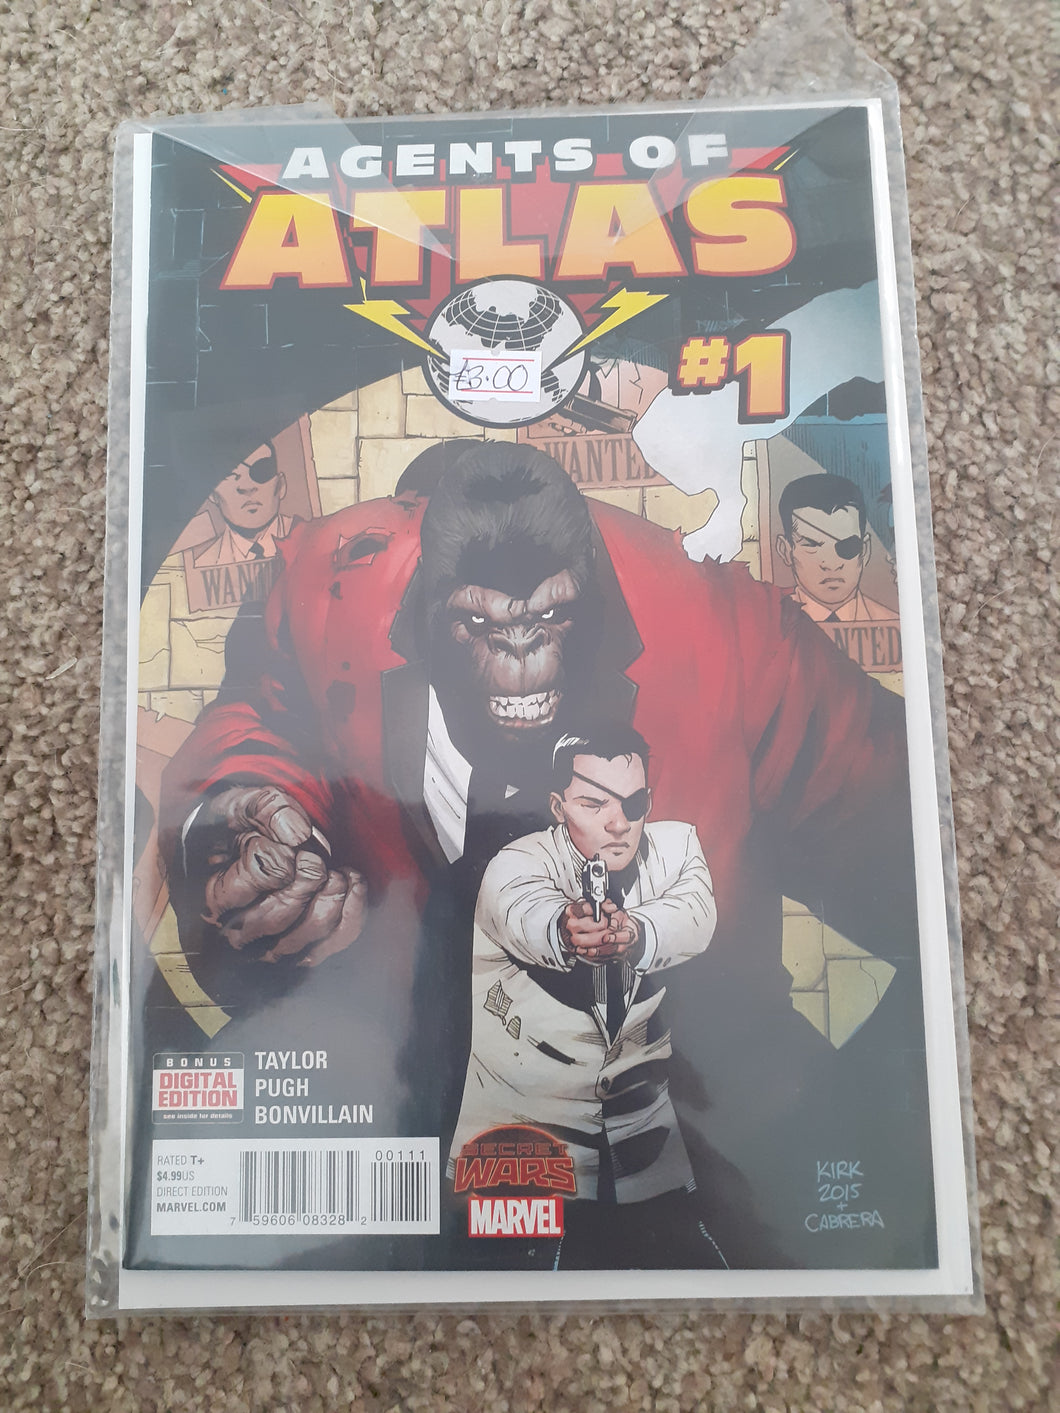 Agents of Atlas: Secret Wars Tie-In #1